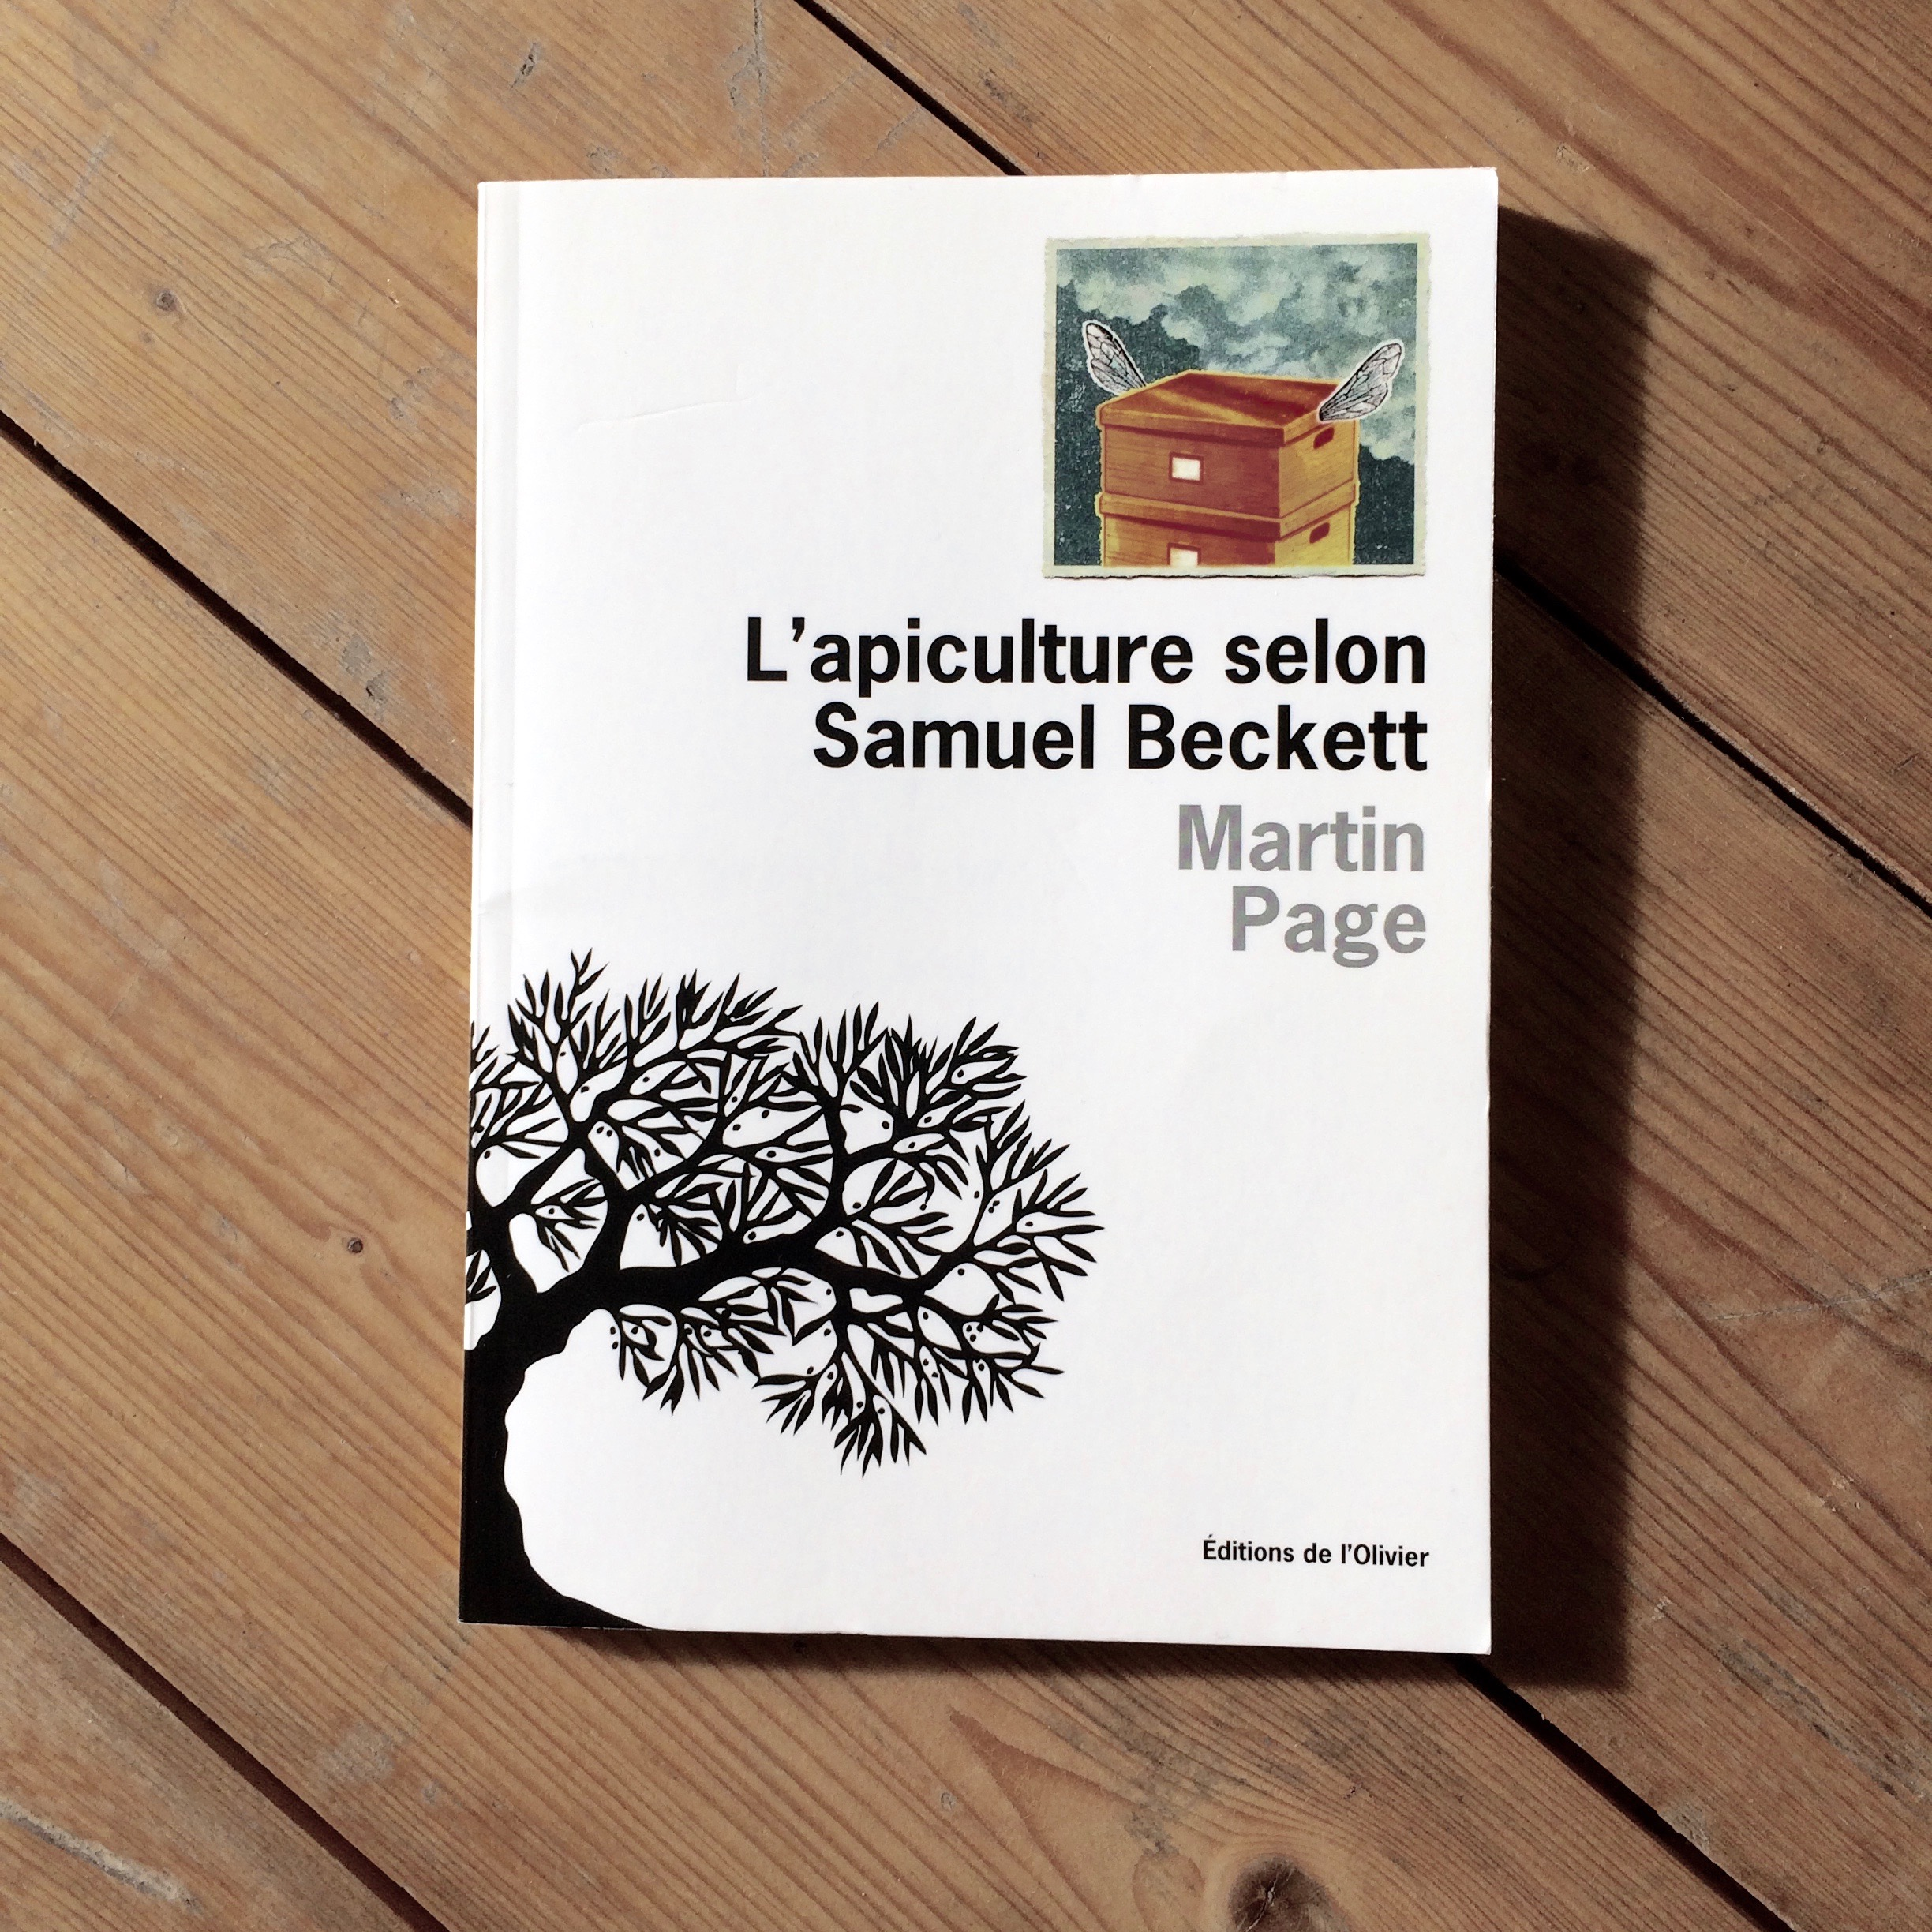 Title:  Beekeeping with Samuel Beckett   Author: Martin Page  Year of publication: 2013  Pages: 96  Publisher: Éditions de l'Olivier (France)  World English rights available.